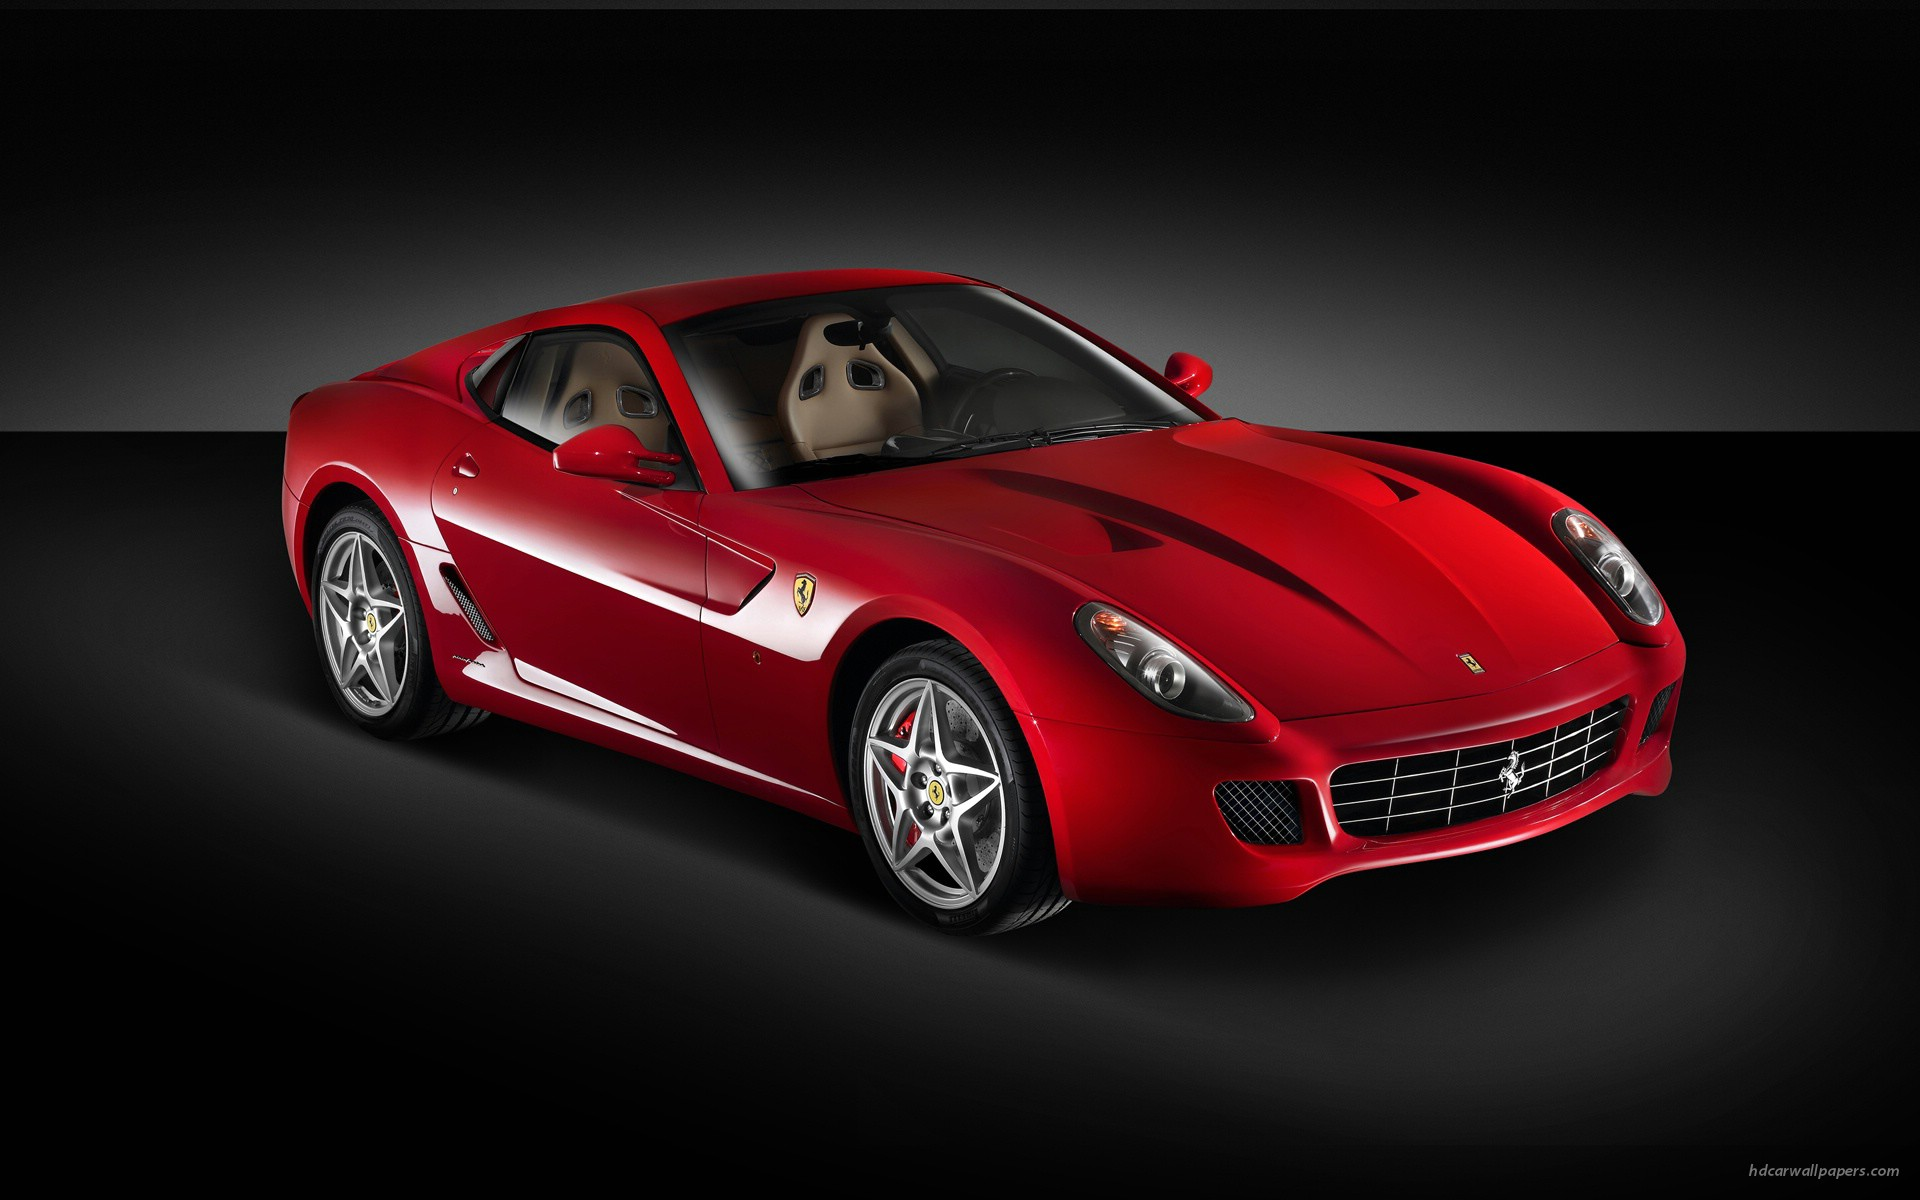 HD Wallpapers Ferrari 599 GTB